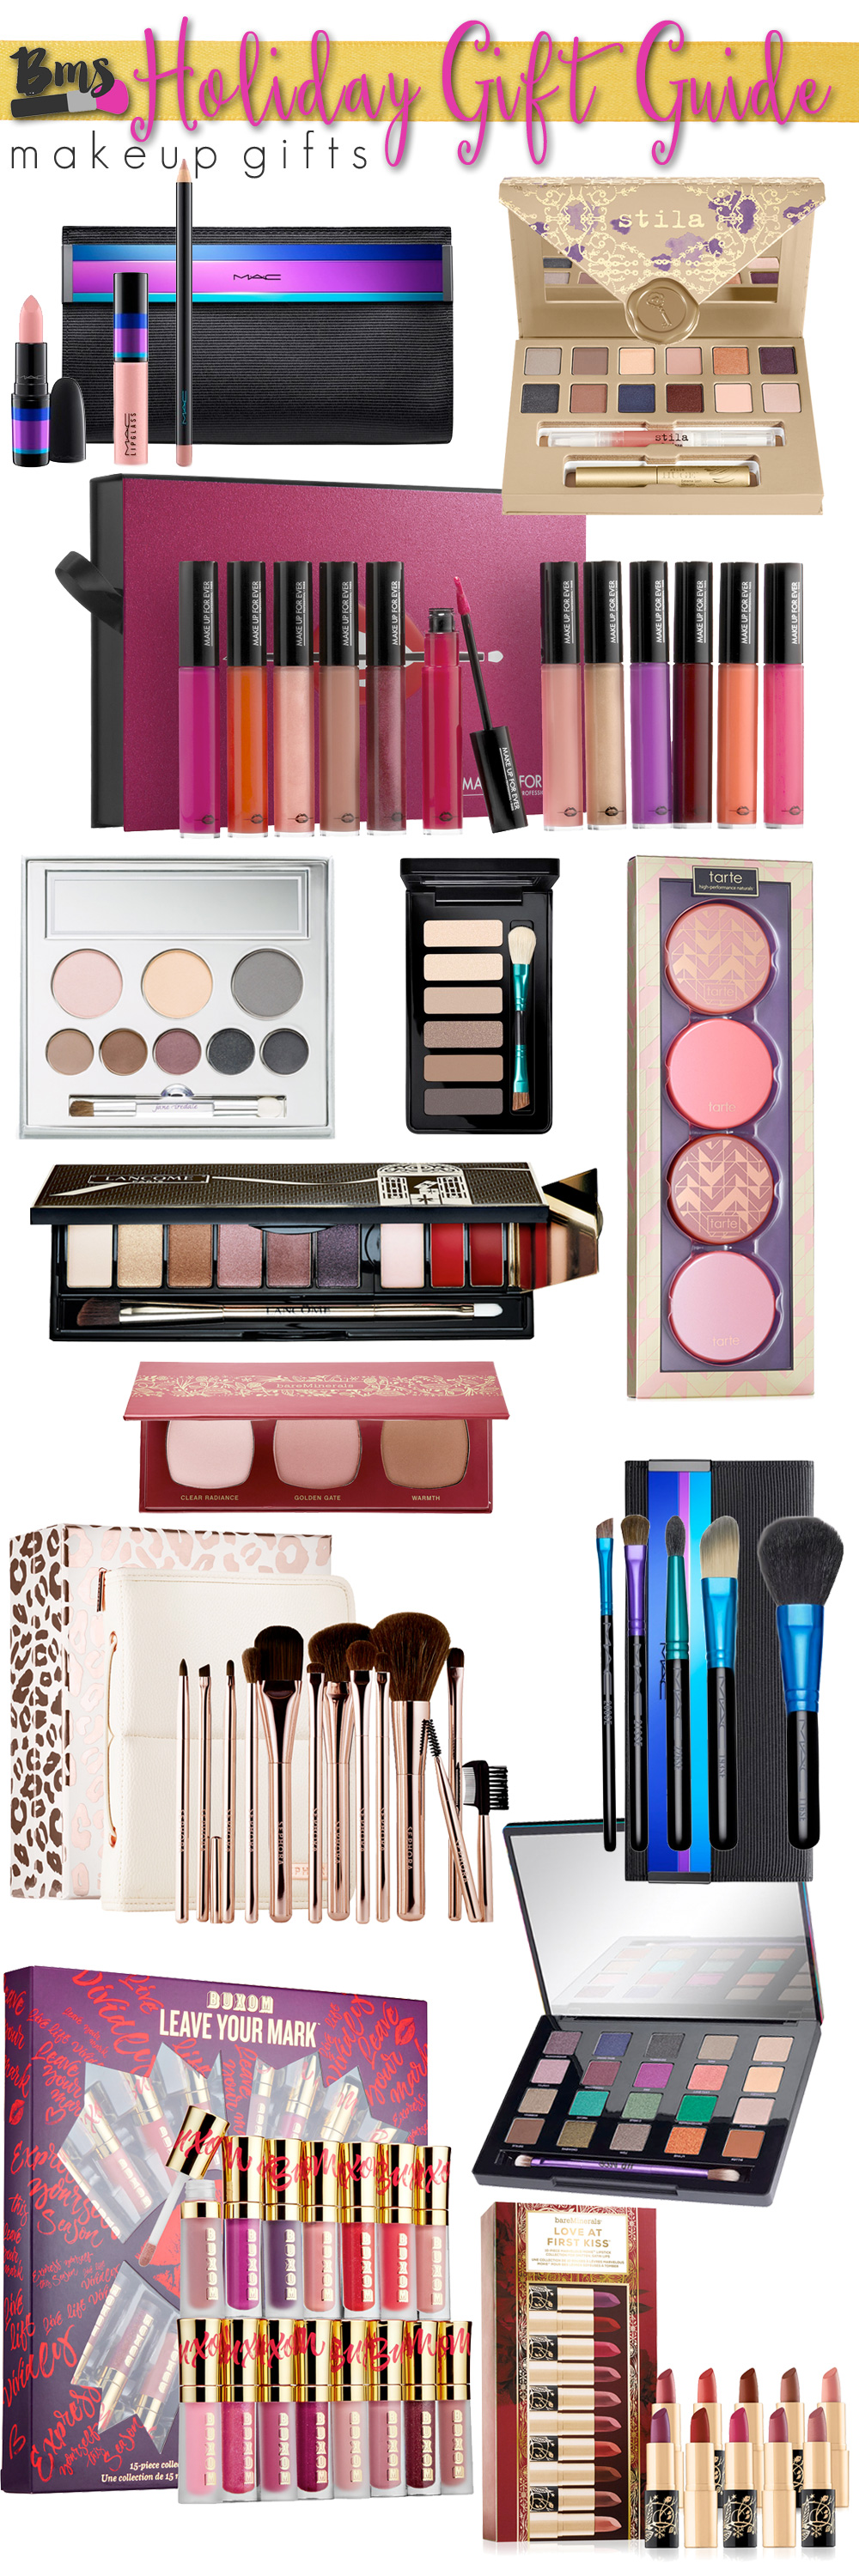 Holiday Gift Guide 2015: Best Makeup Gifts